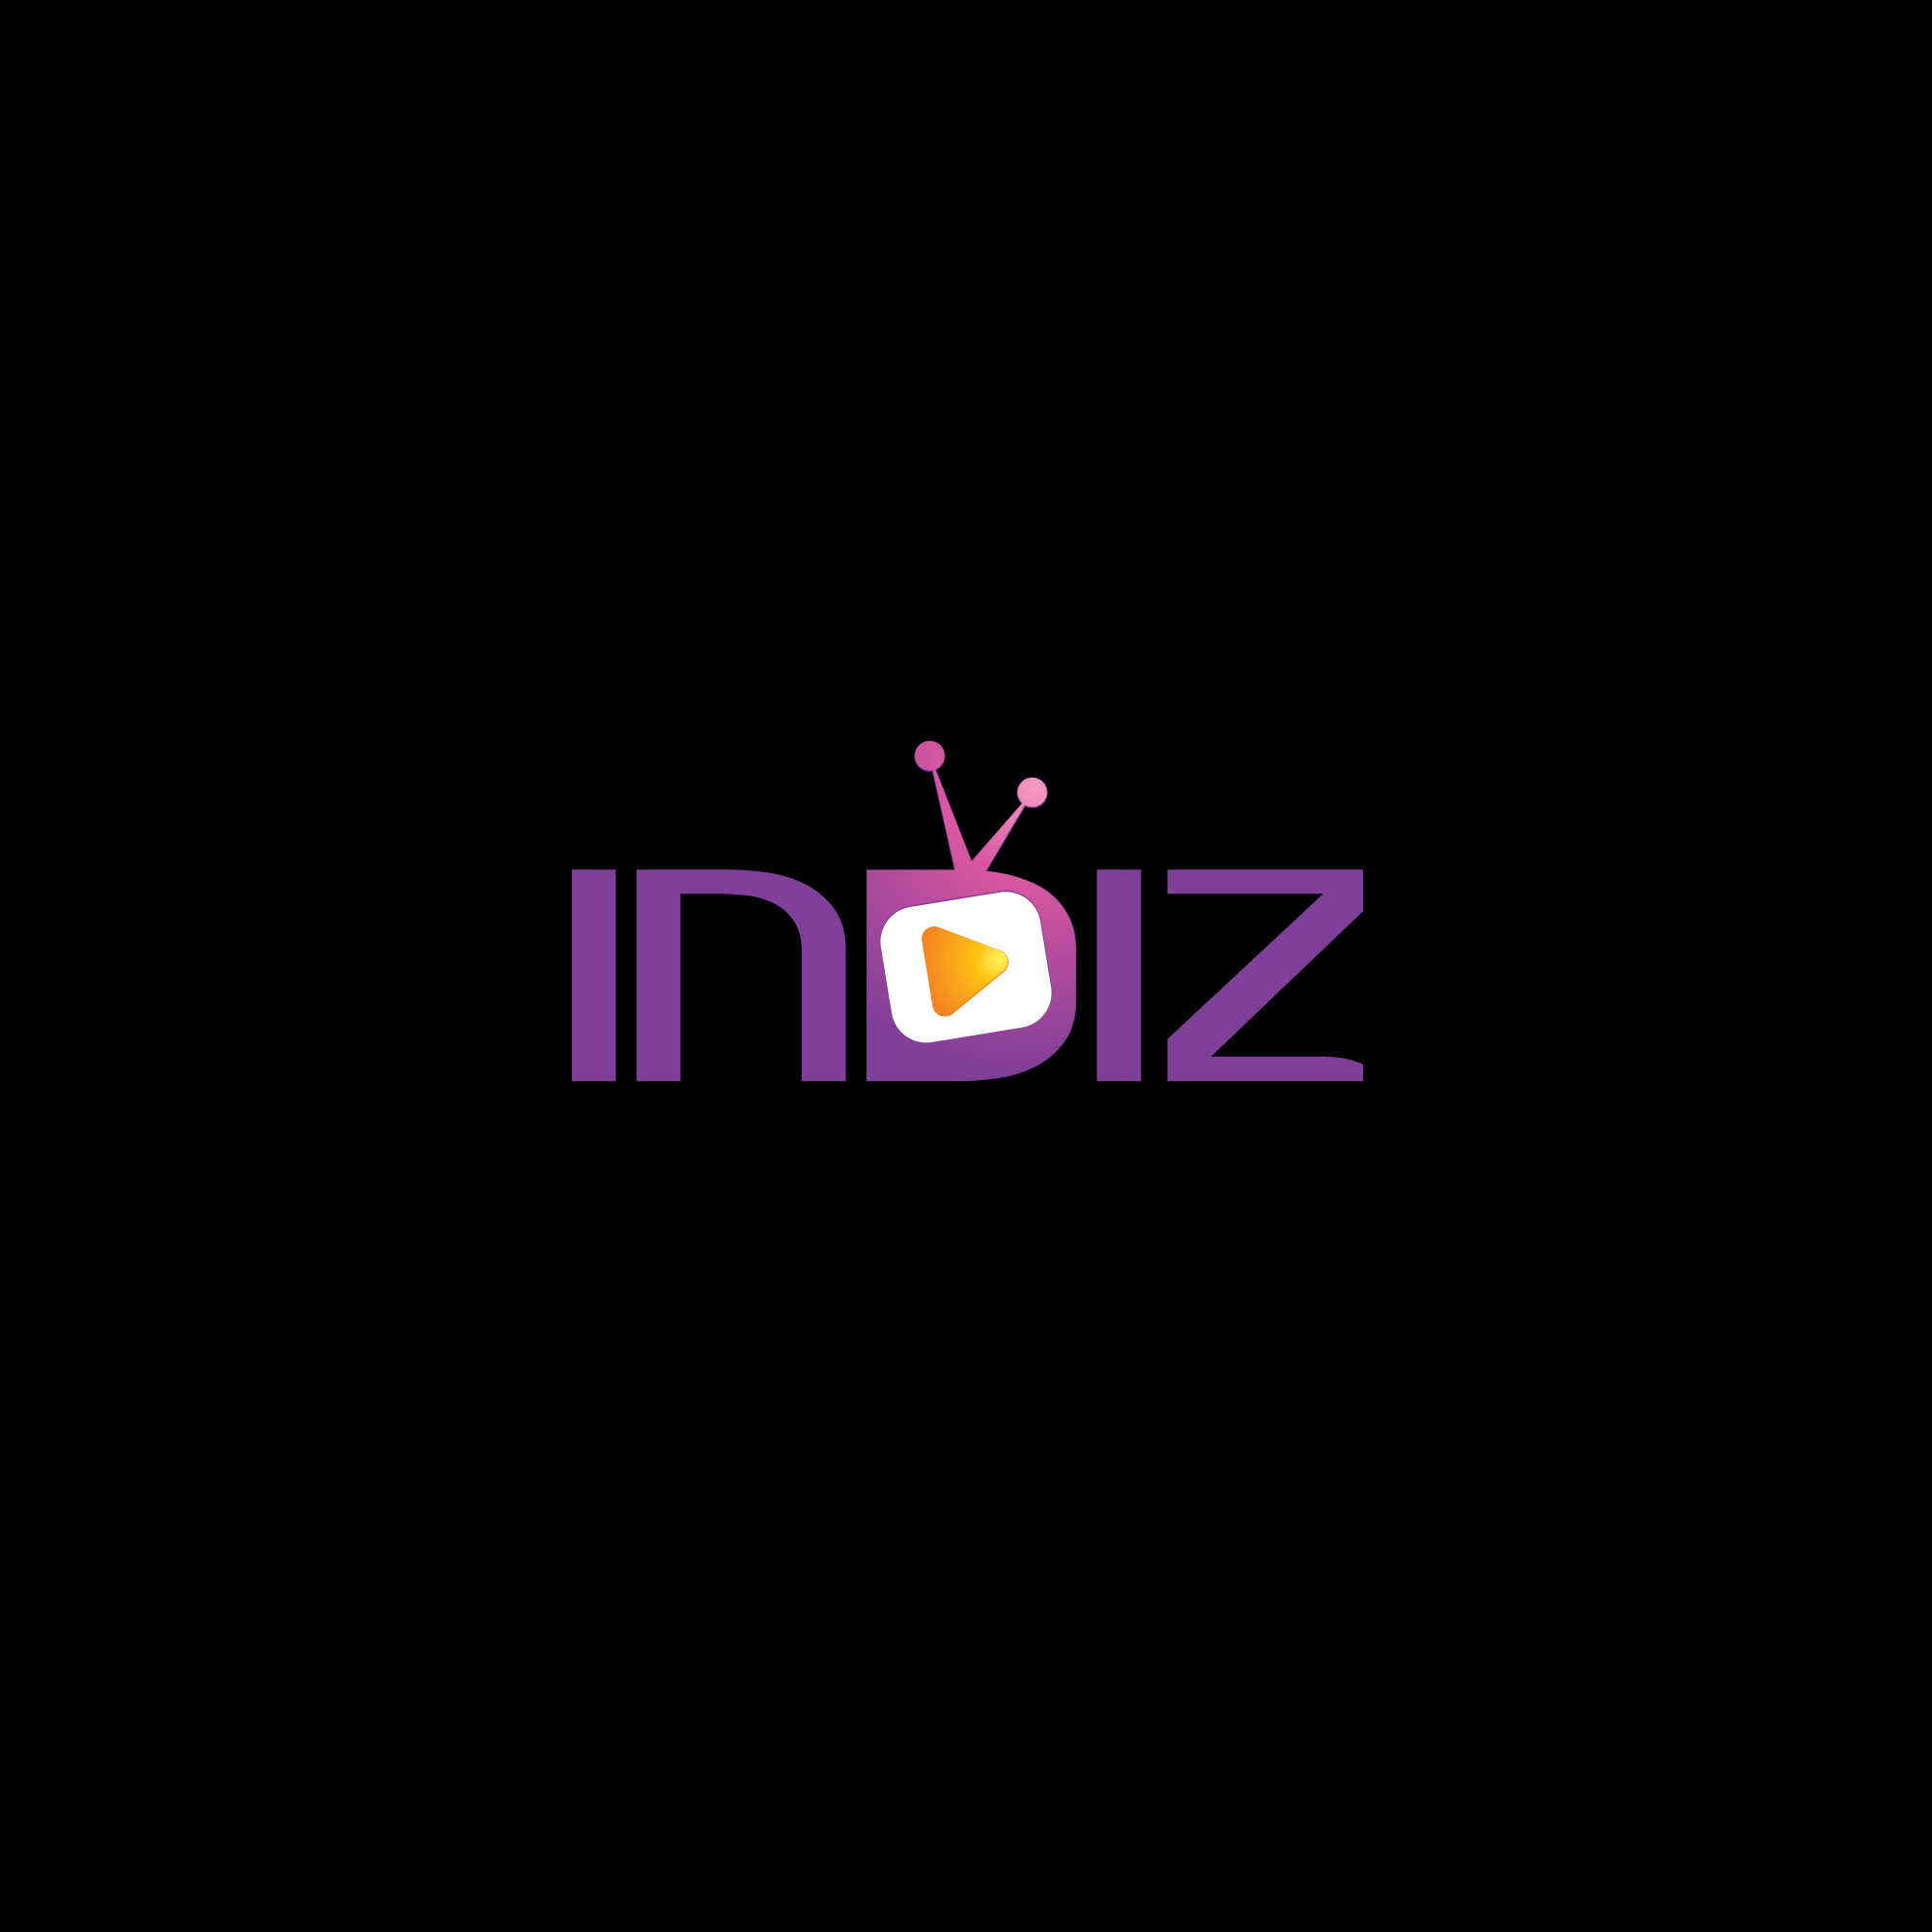 Logo Design by Mrs Suhartini - Entry No. 206 in the Logo Design Contest Fun Logo Design for Indiz.